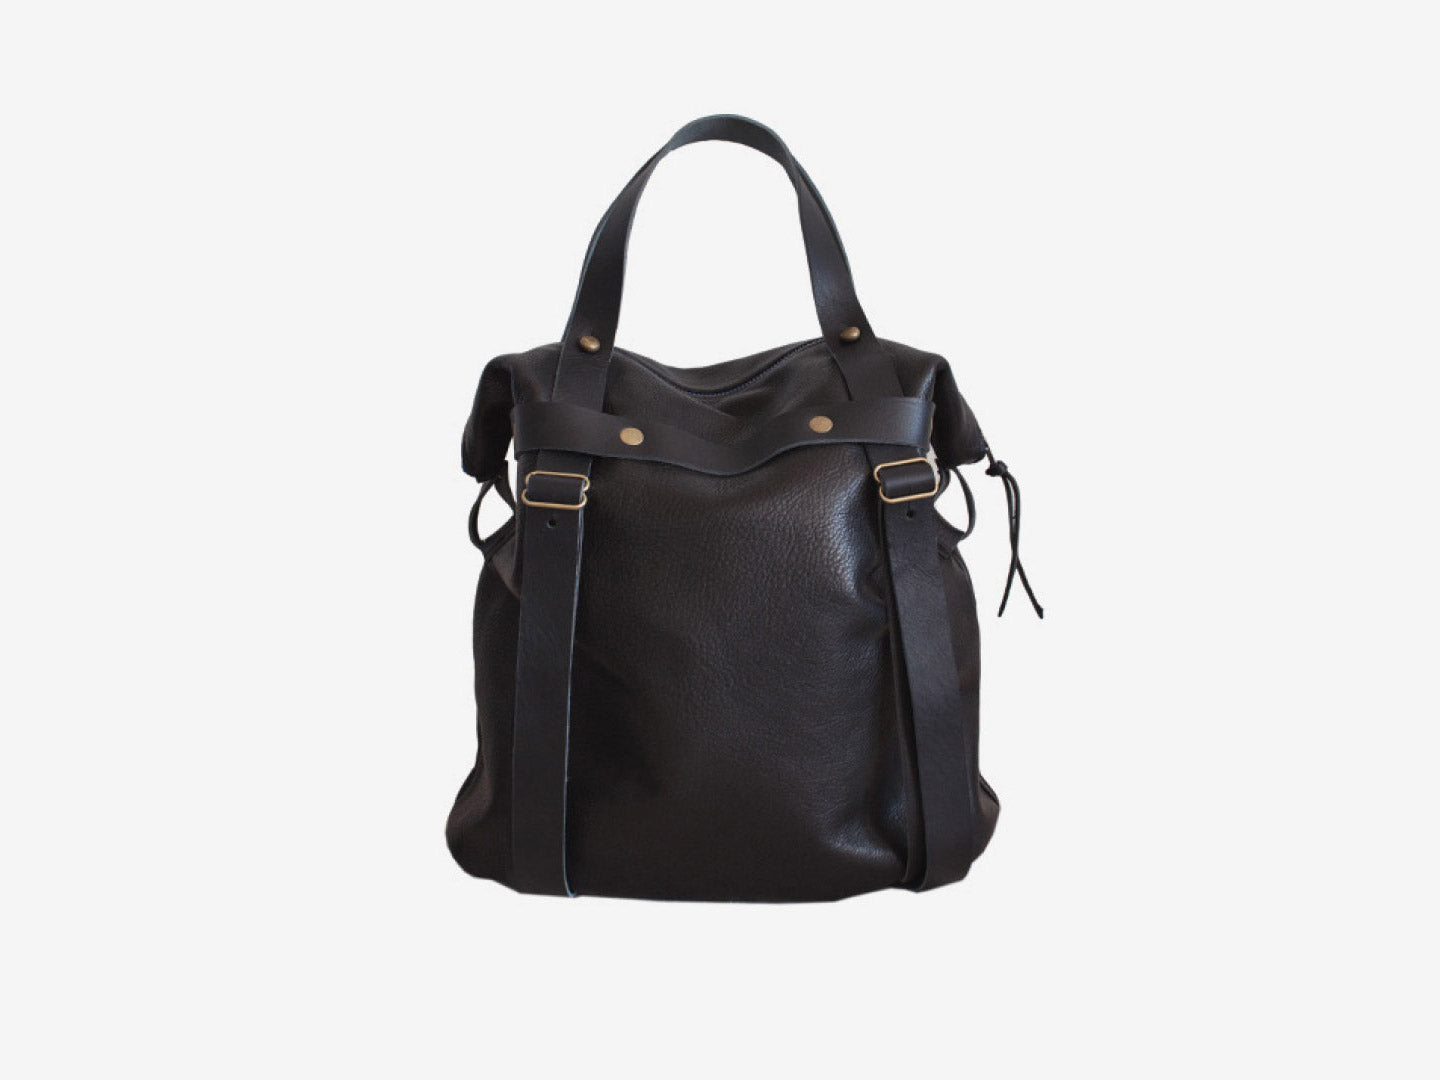 LG A-Line tote